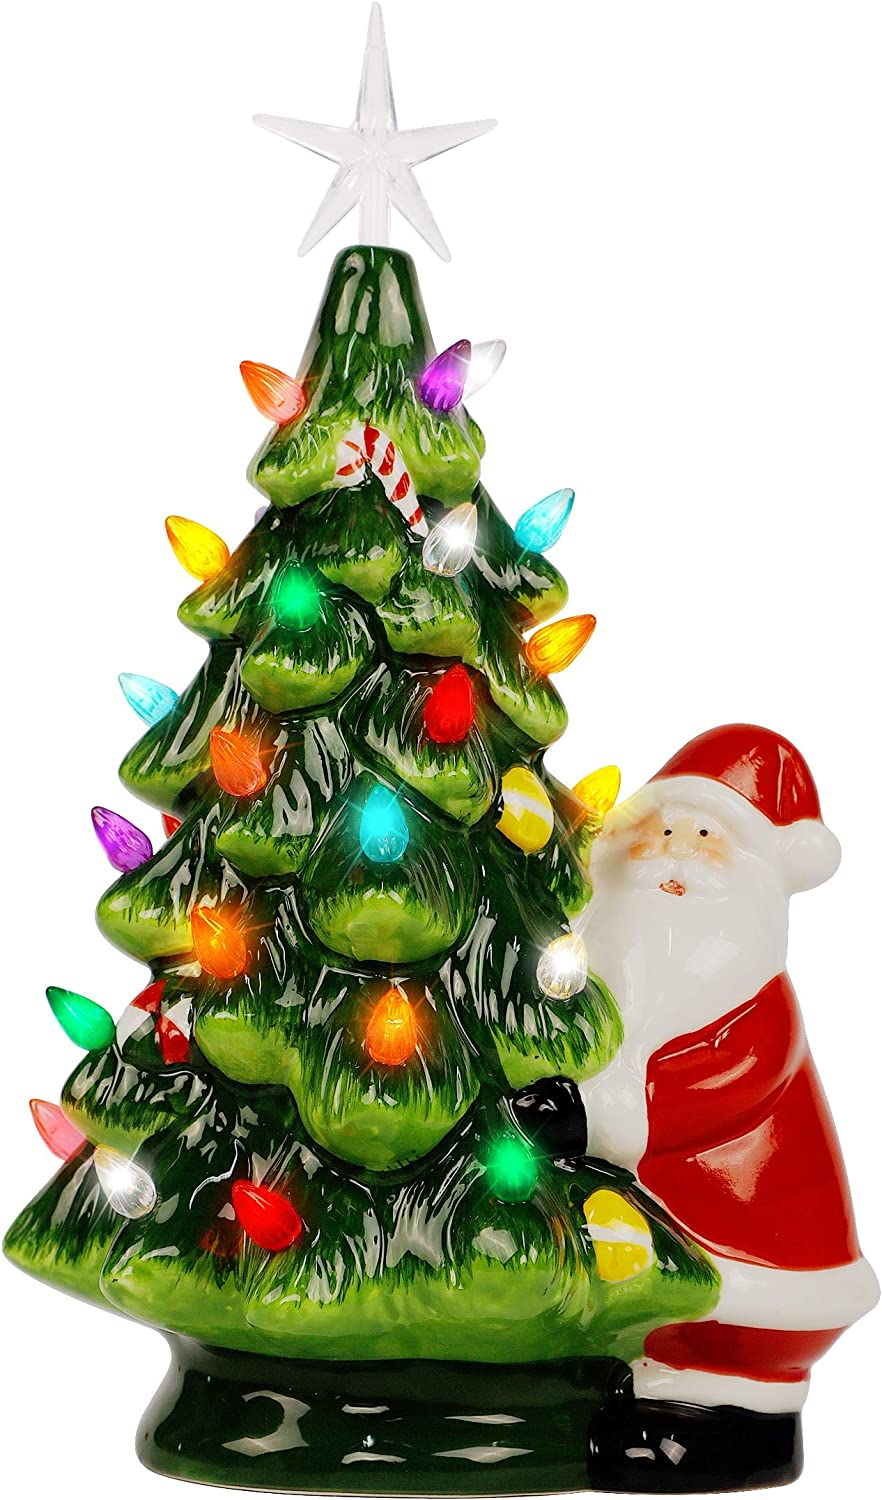 Lulu Home Ceramic Christmas Tree, 13 Inch LED Light Up Ceramic Tabletop Christmas Tree with 54 Multicolored Lights and a 5 Point Star Topper, Green Mini Vintage Lighted Ceramic Tree for Tabletop